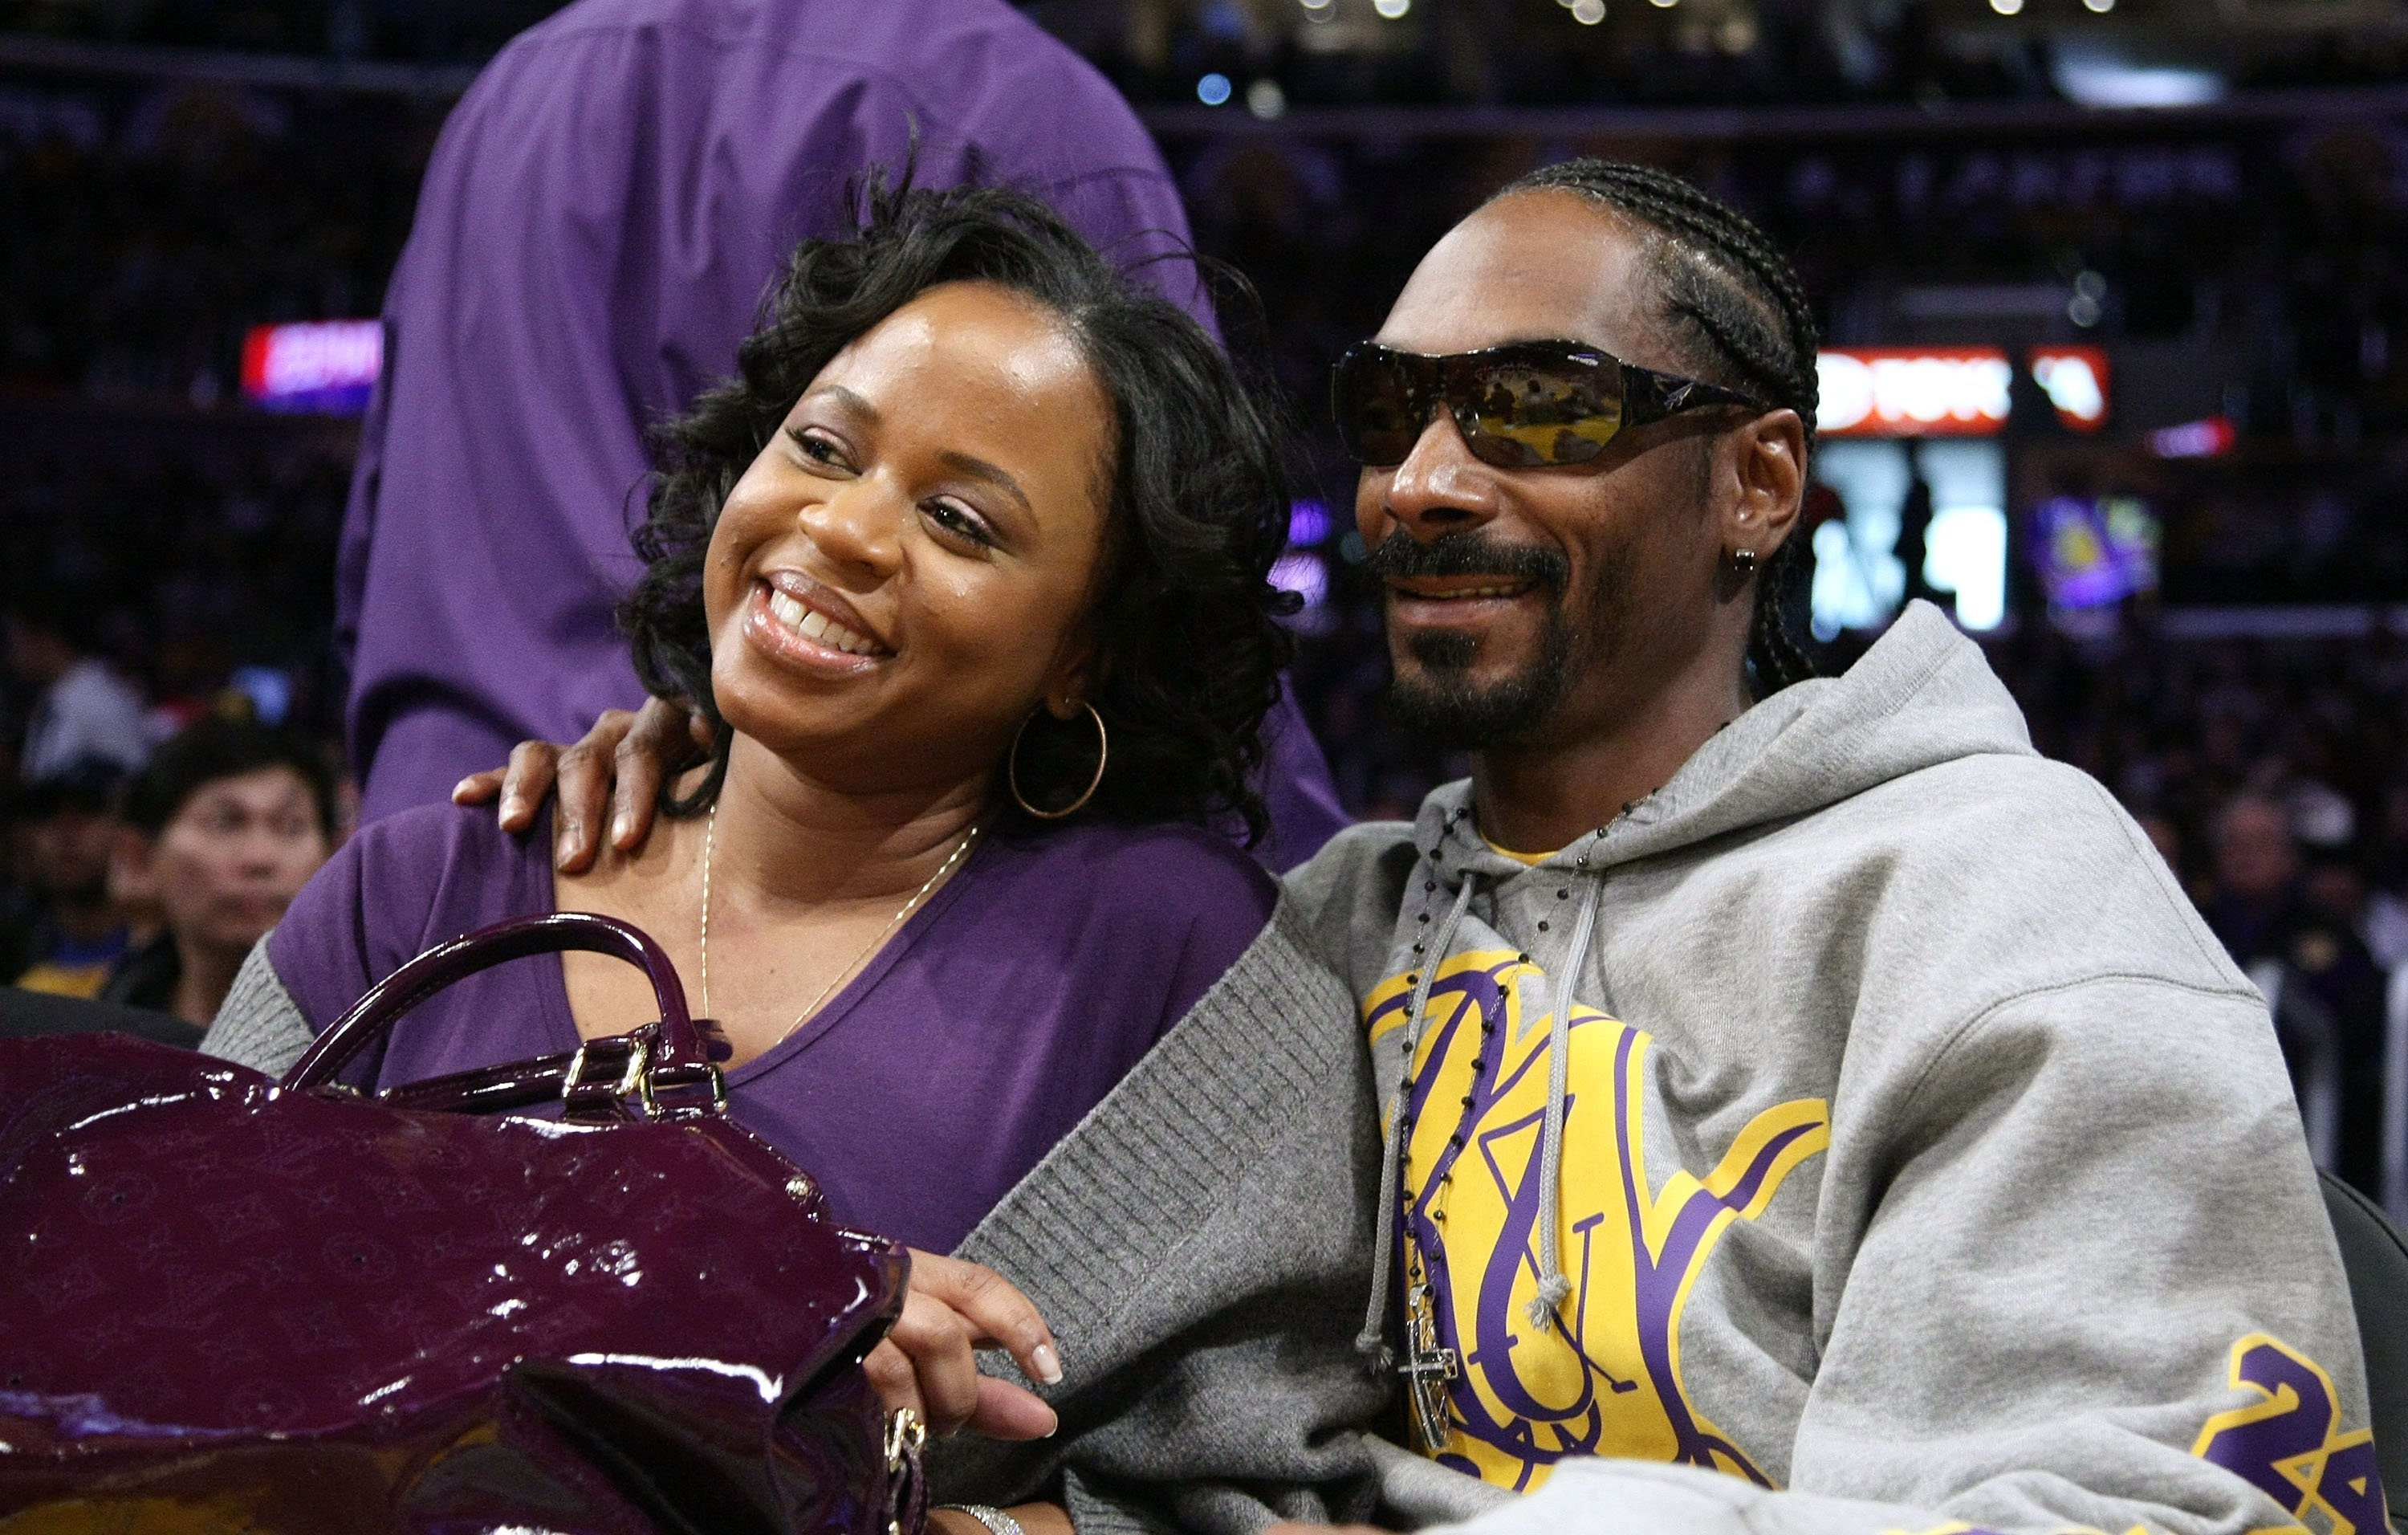 Snoop Dogg and Shante Broadus attend the Los Angeles Lakers vs Boston Celtics game on December 25, 2008. | Photo: GettyImages